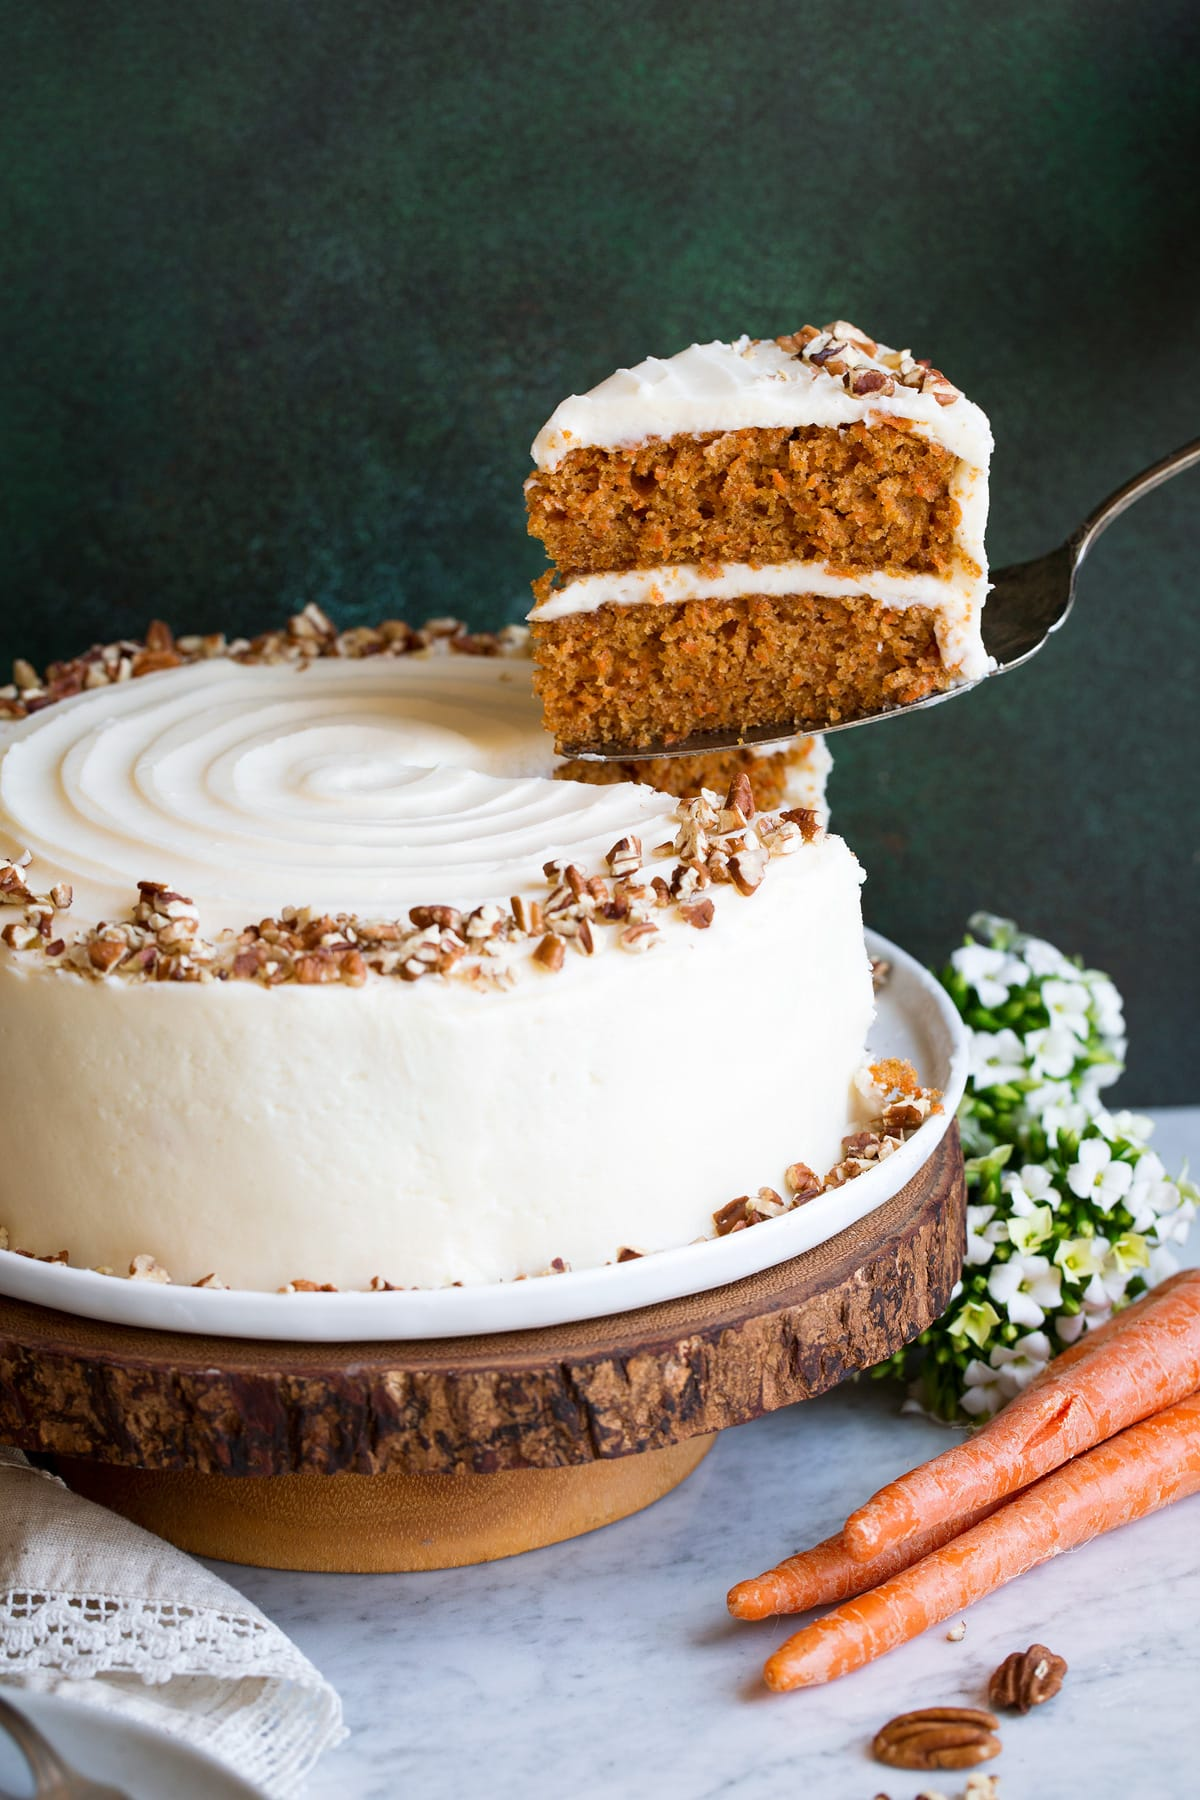 Carrot Cake with one slice being removed.